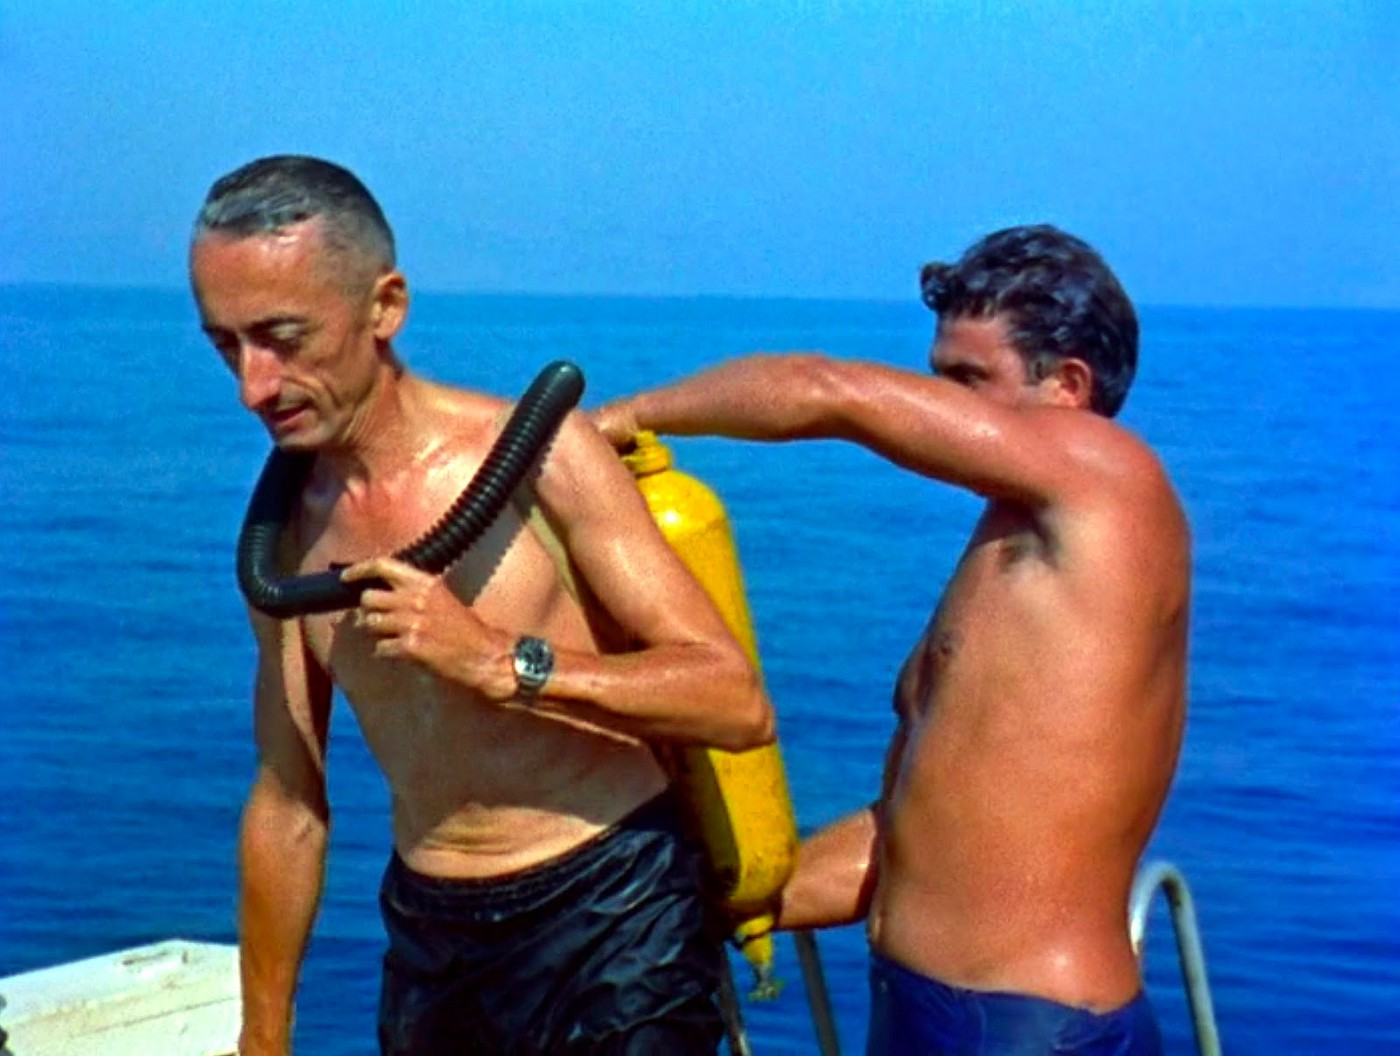 Jacques Cousteau wearing his Aqua-Lung, with his team mate helping him